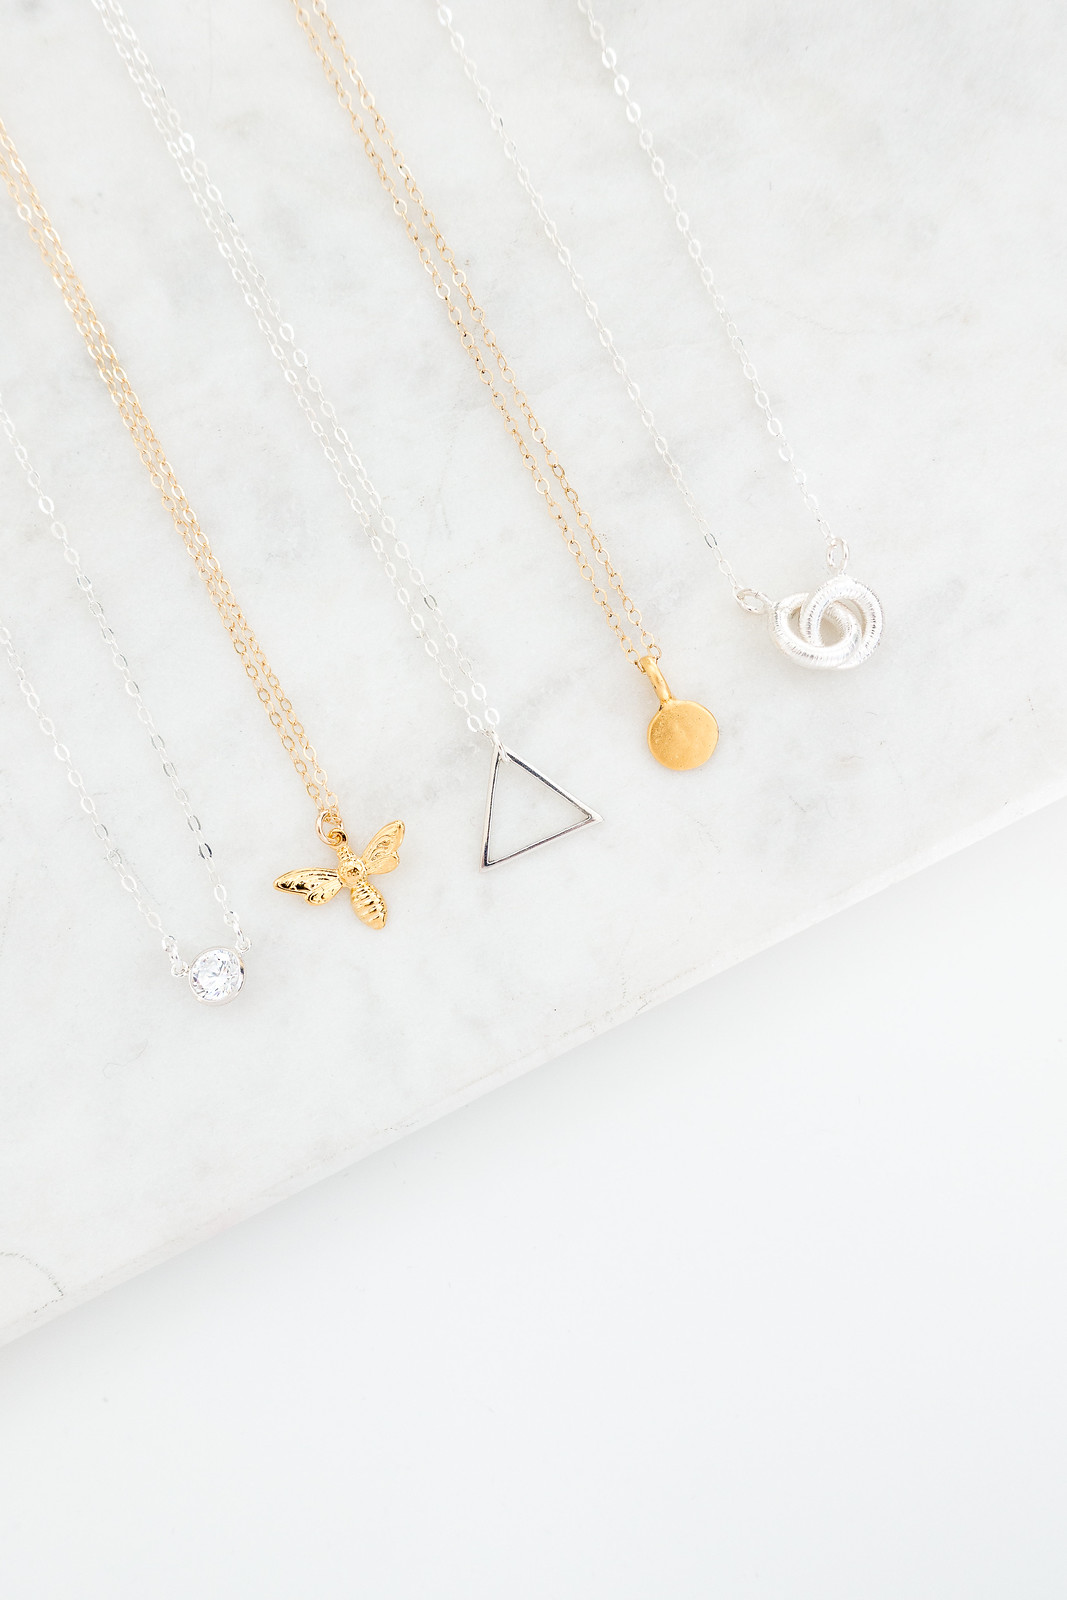 Sustainable Minimal Jewellery UK